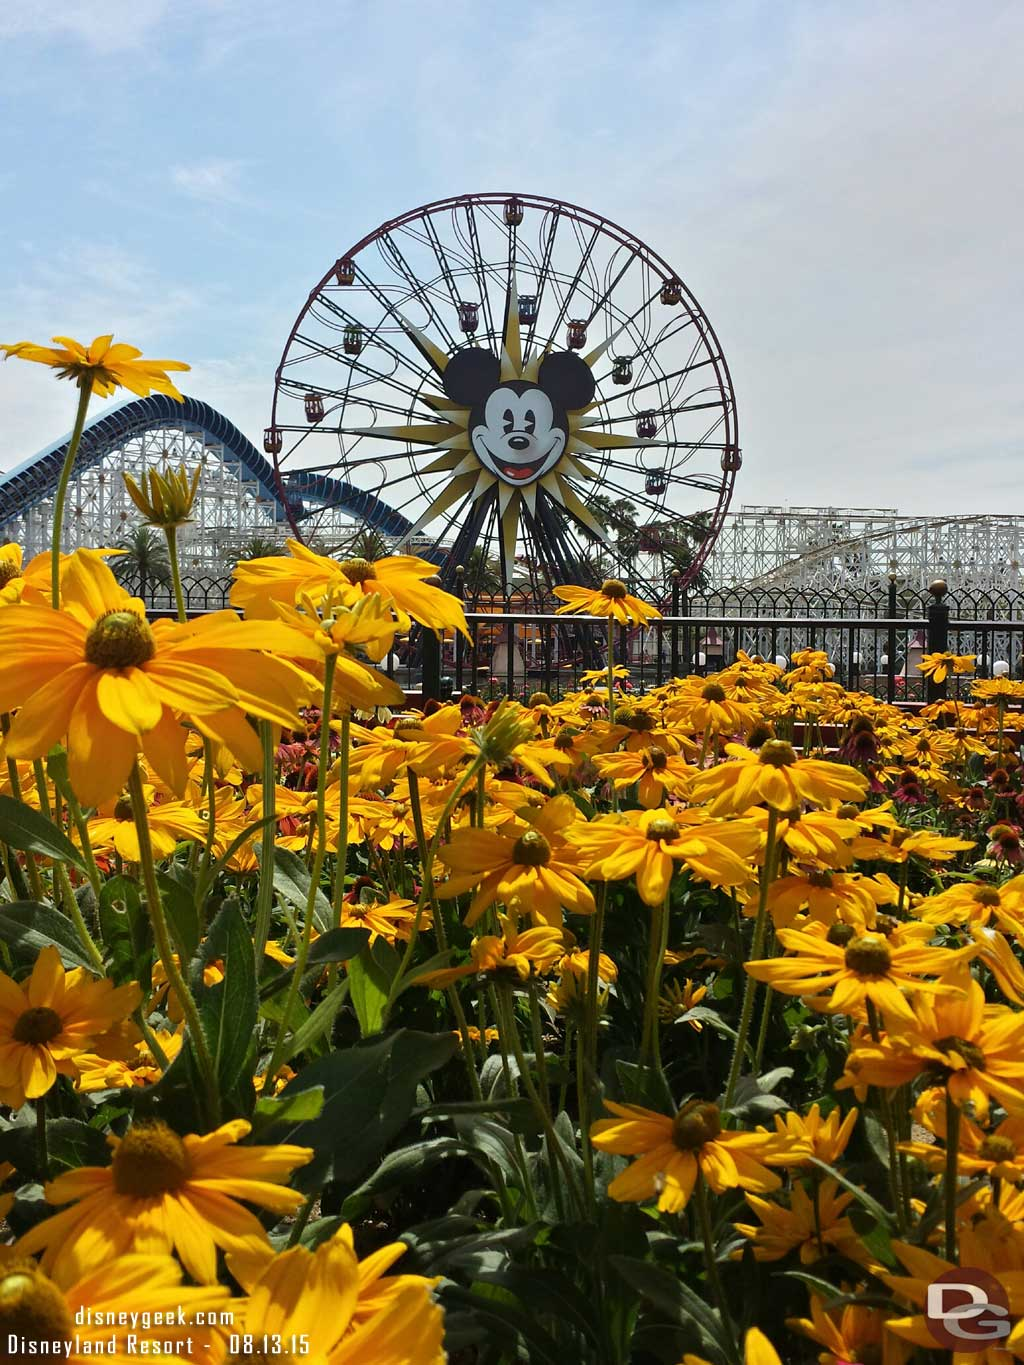 Mickey's Fun Wheel on this summer afternoon in Disney California Adventure